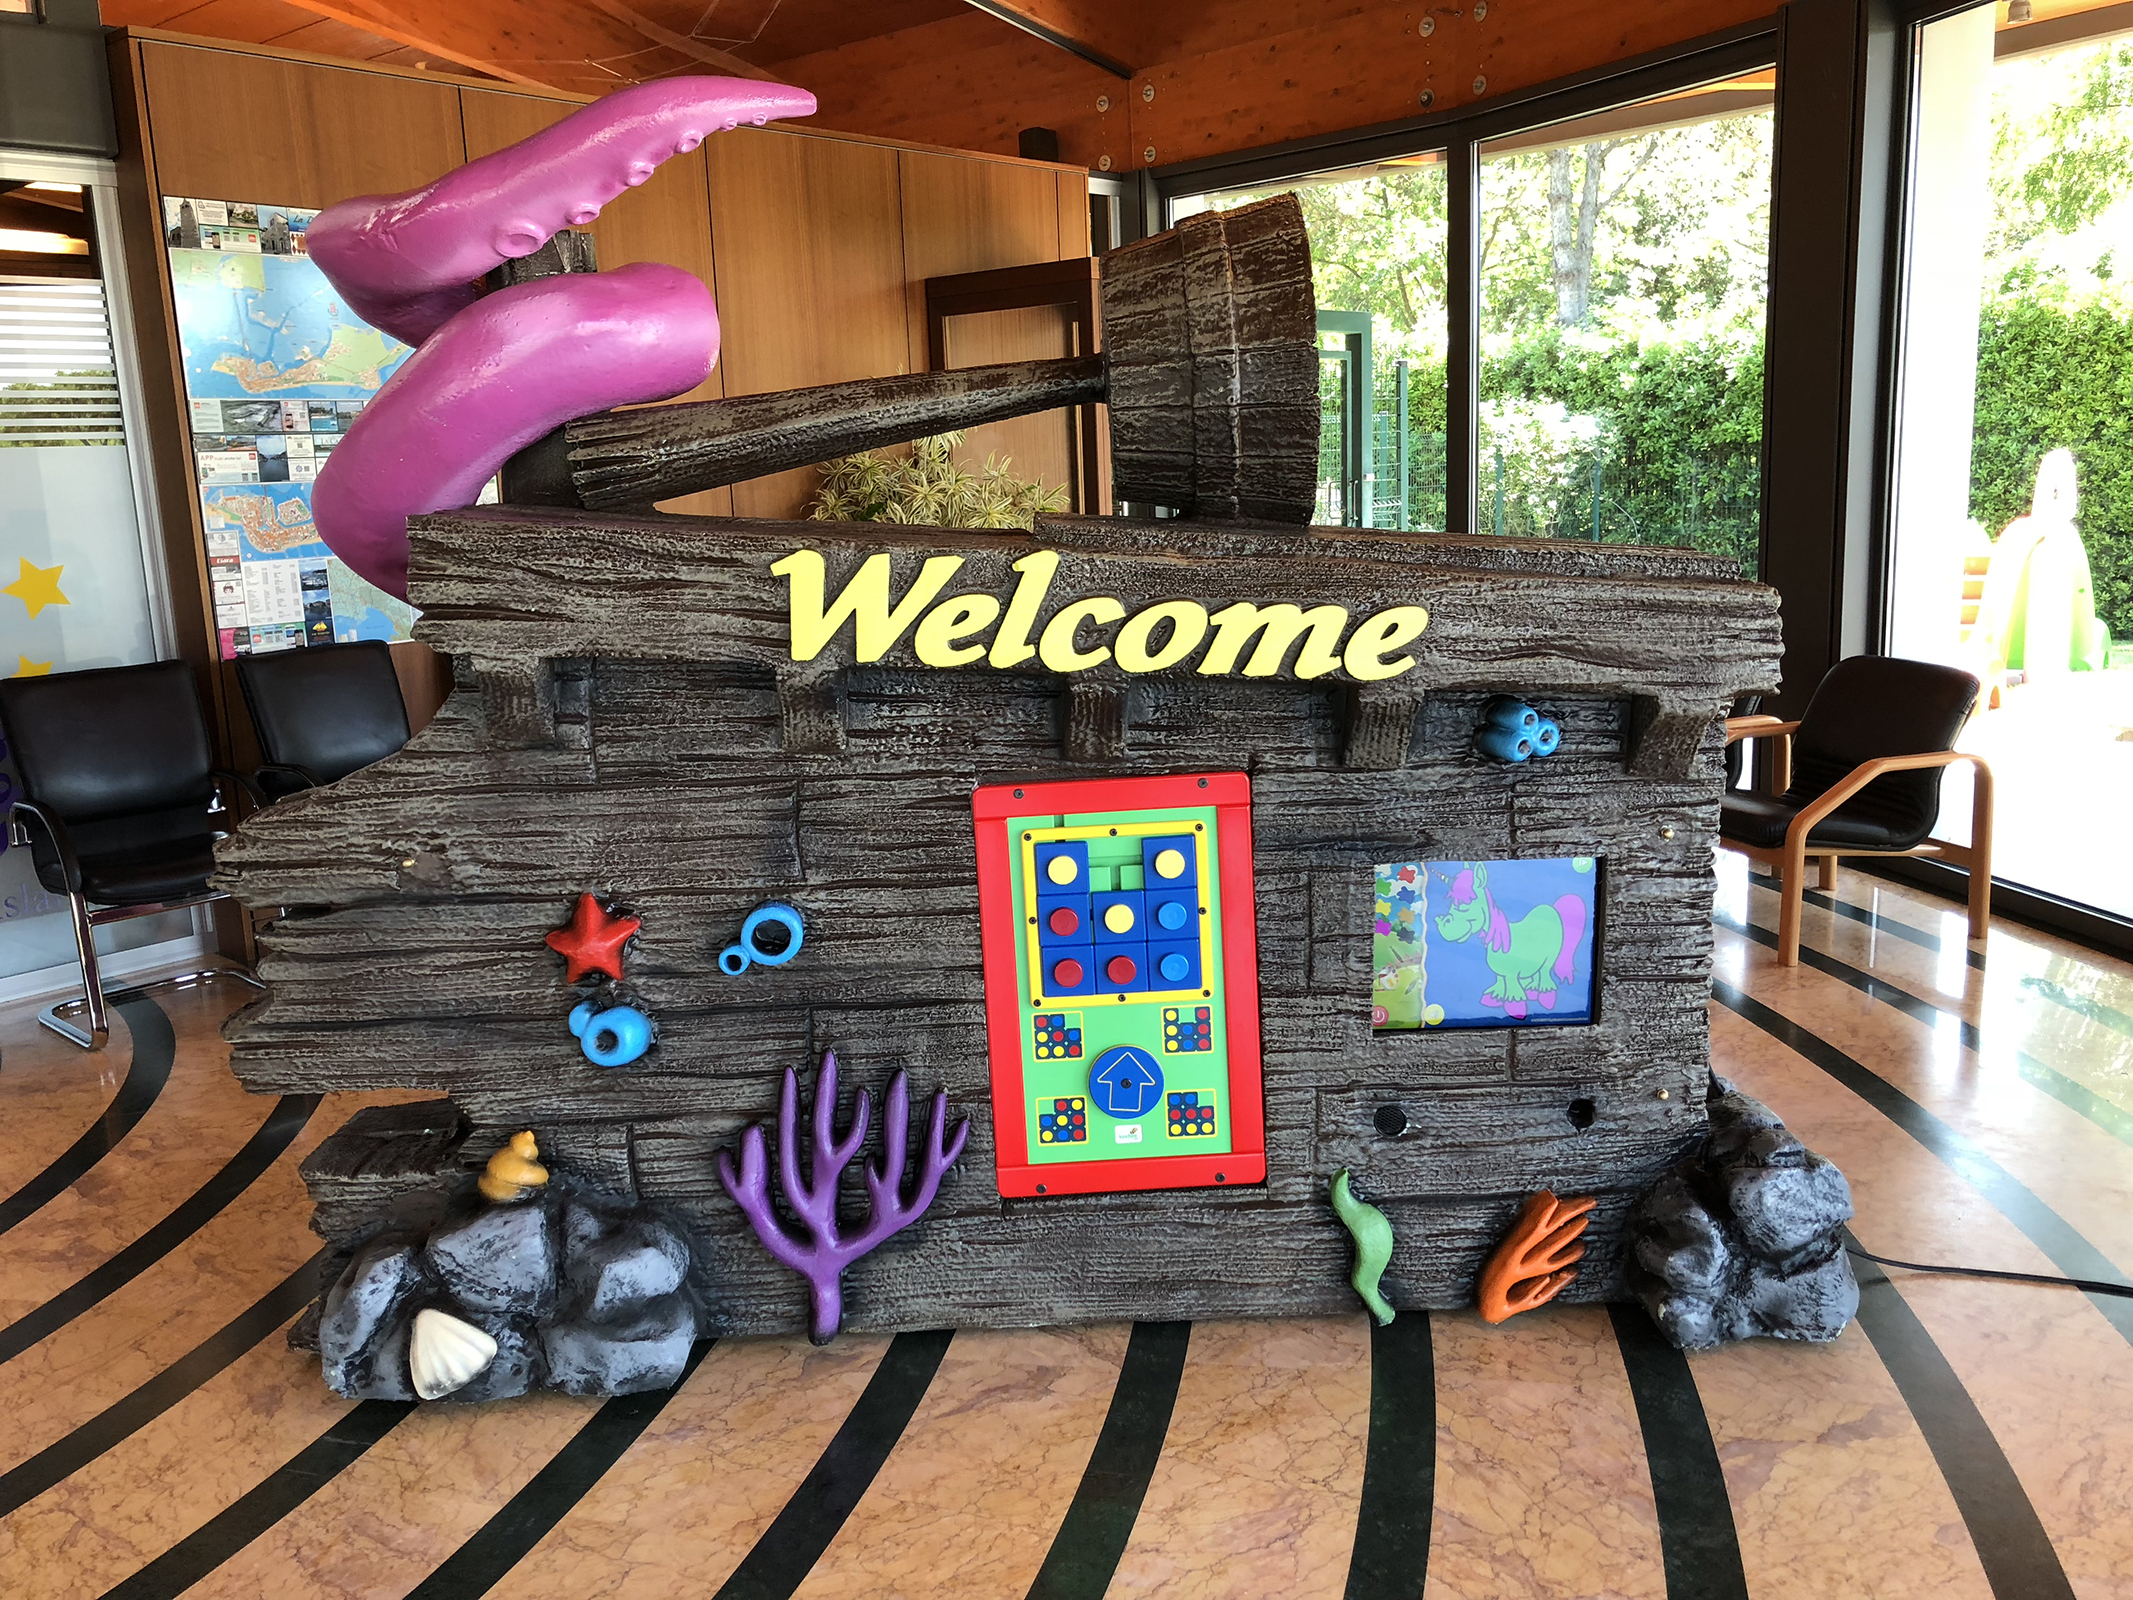 Welcome Moveable #reception in an #entrancehall of a #familyresort village with 2x #magicscreen and #keebee. Installation and themed frame structure made by 3e60.